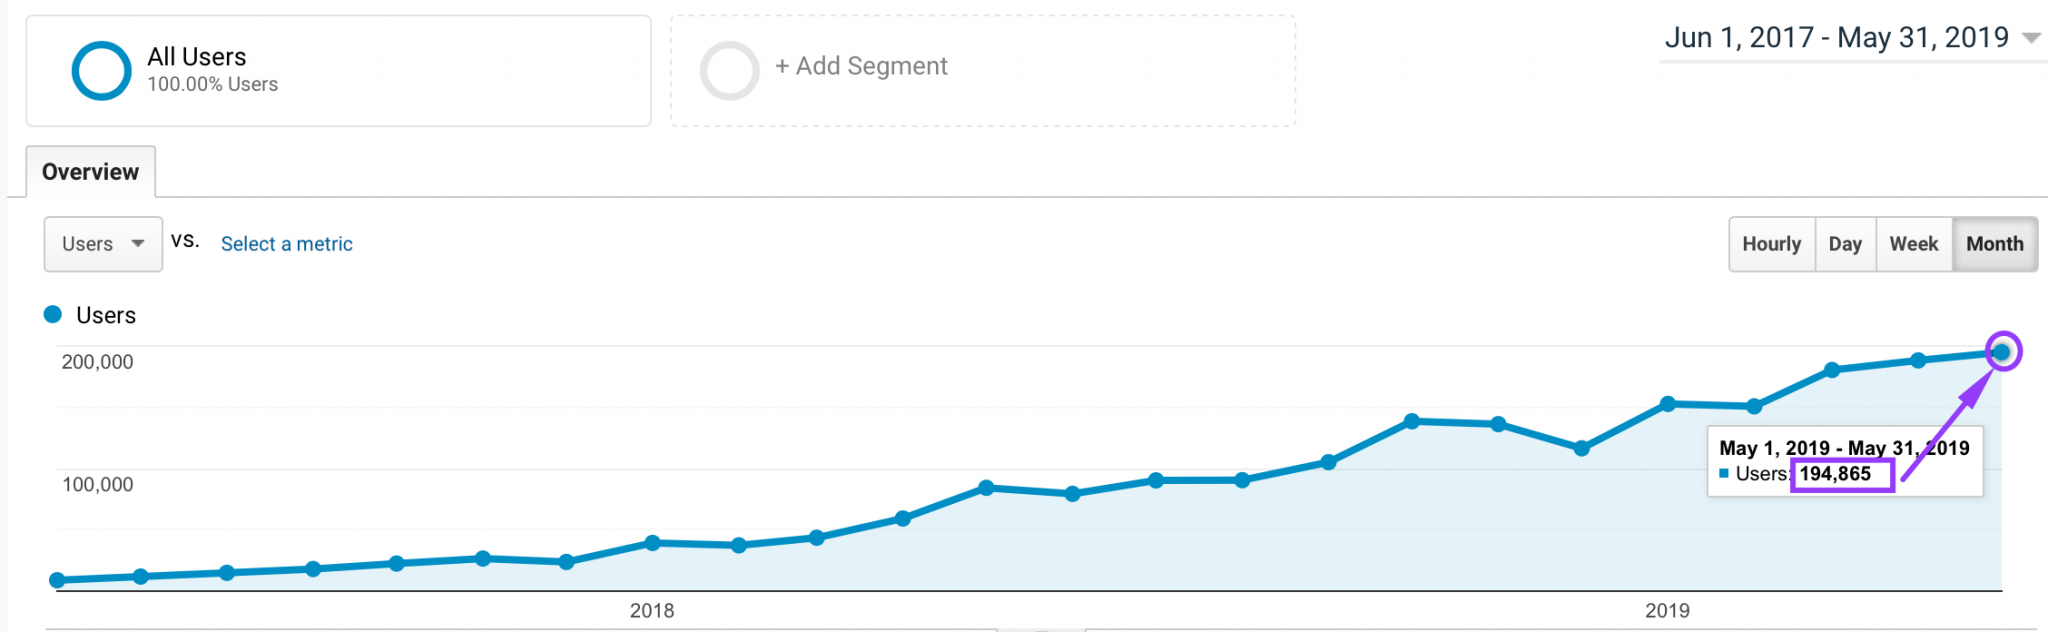 SEO case study - Tallyfy traffic growth